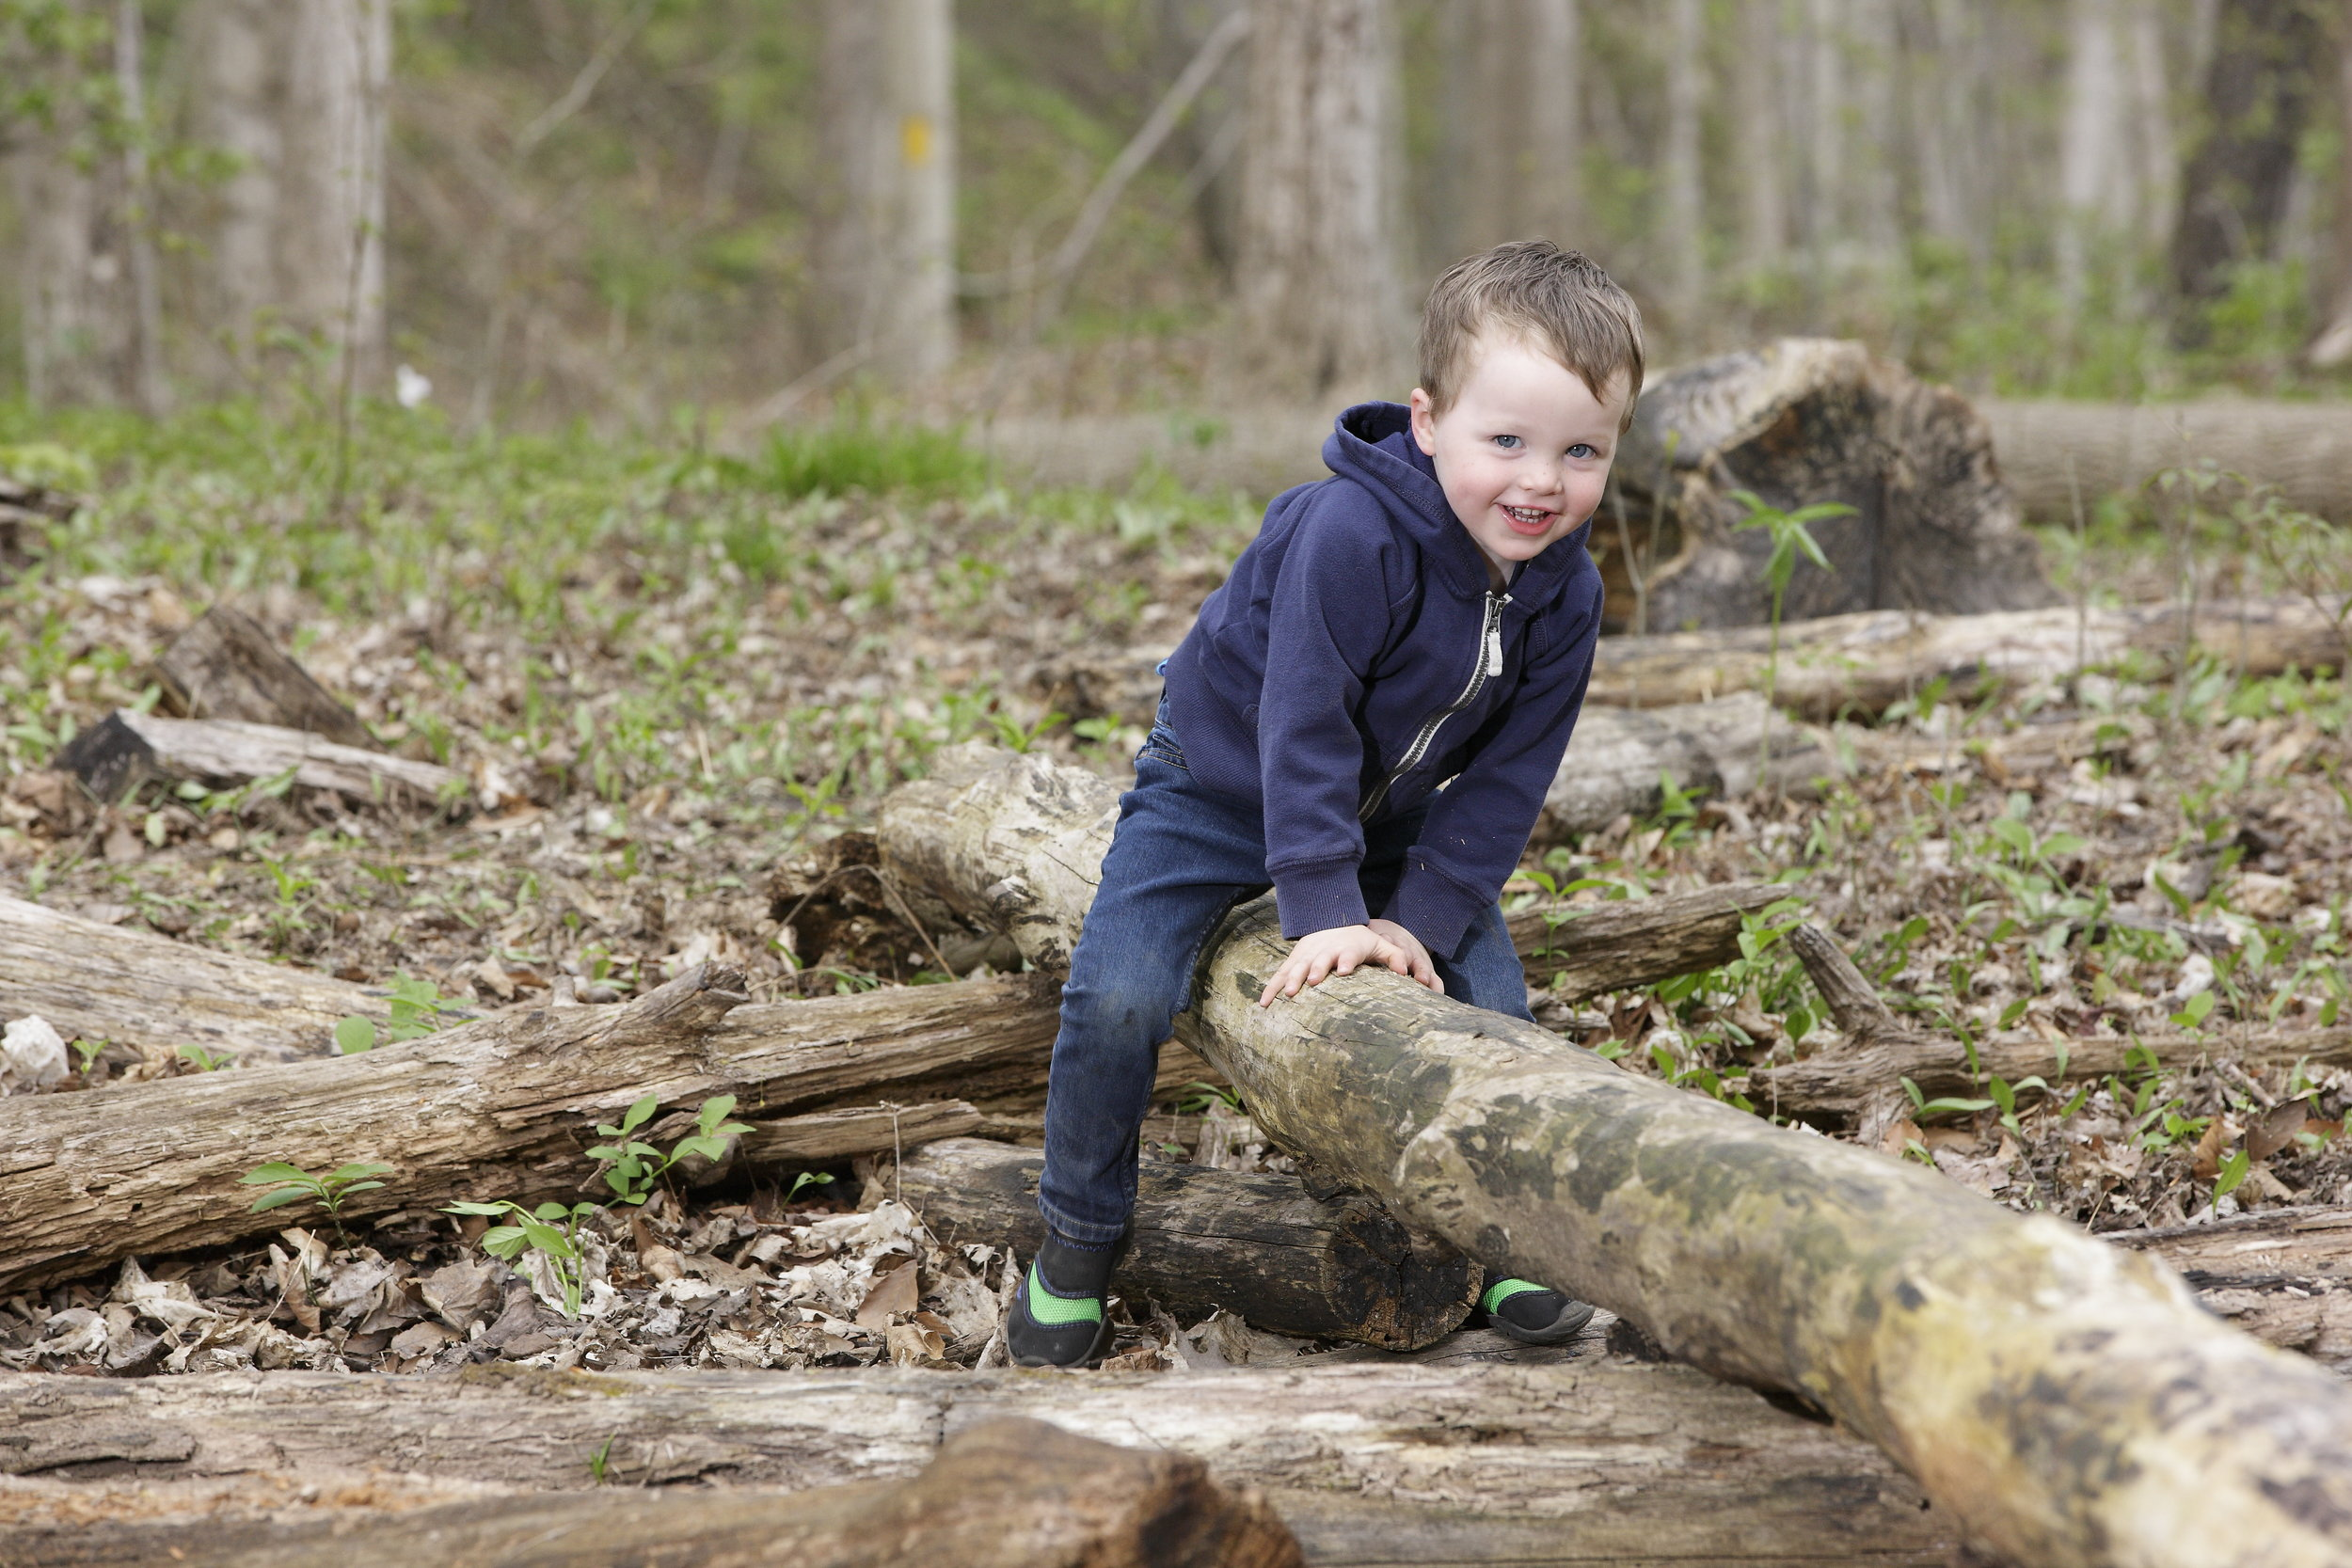 The BEST way to get kids outside is to go with them. - Carve out regular time to engage in unstructured outdoor play. A rapidly growing mountain of evidence indicates that this kind of nature play is critical for children's physical, mental, emotional, and social development, as well as their everyday health. Besides, they'll love you for it!